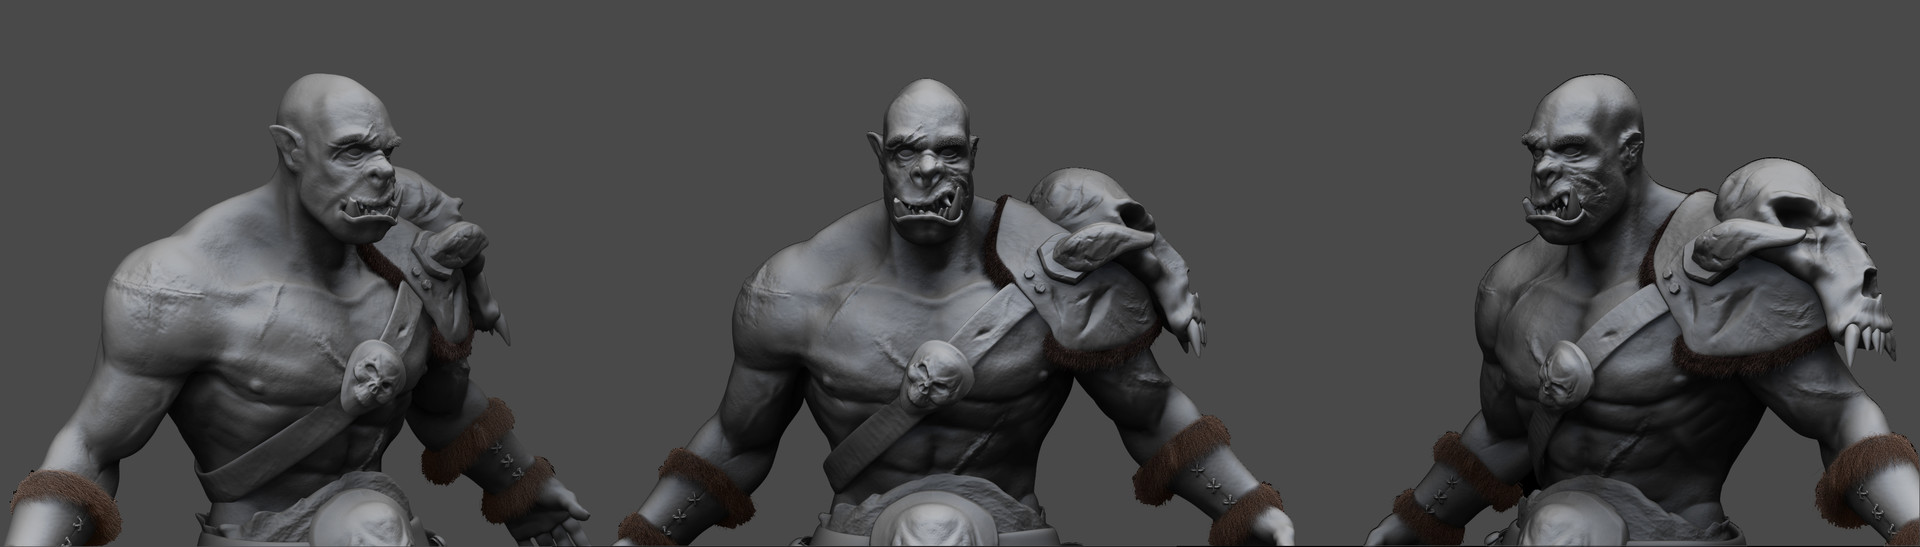 Mitchell sisson orc side upclose2 render